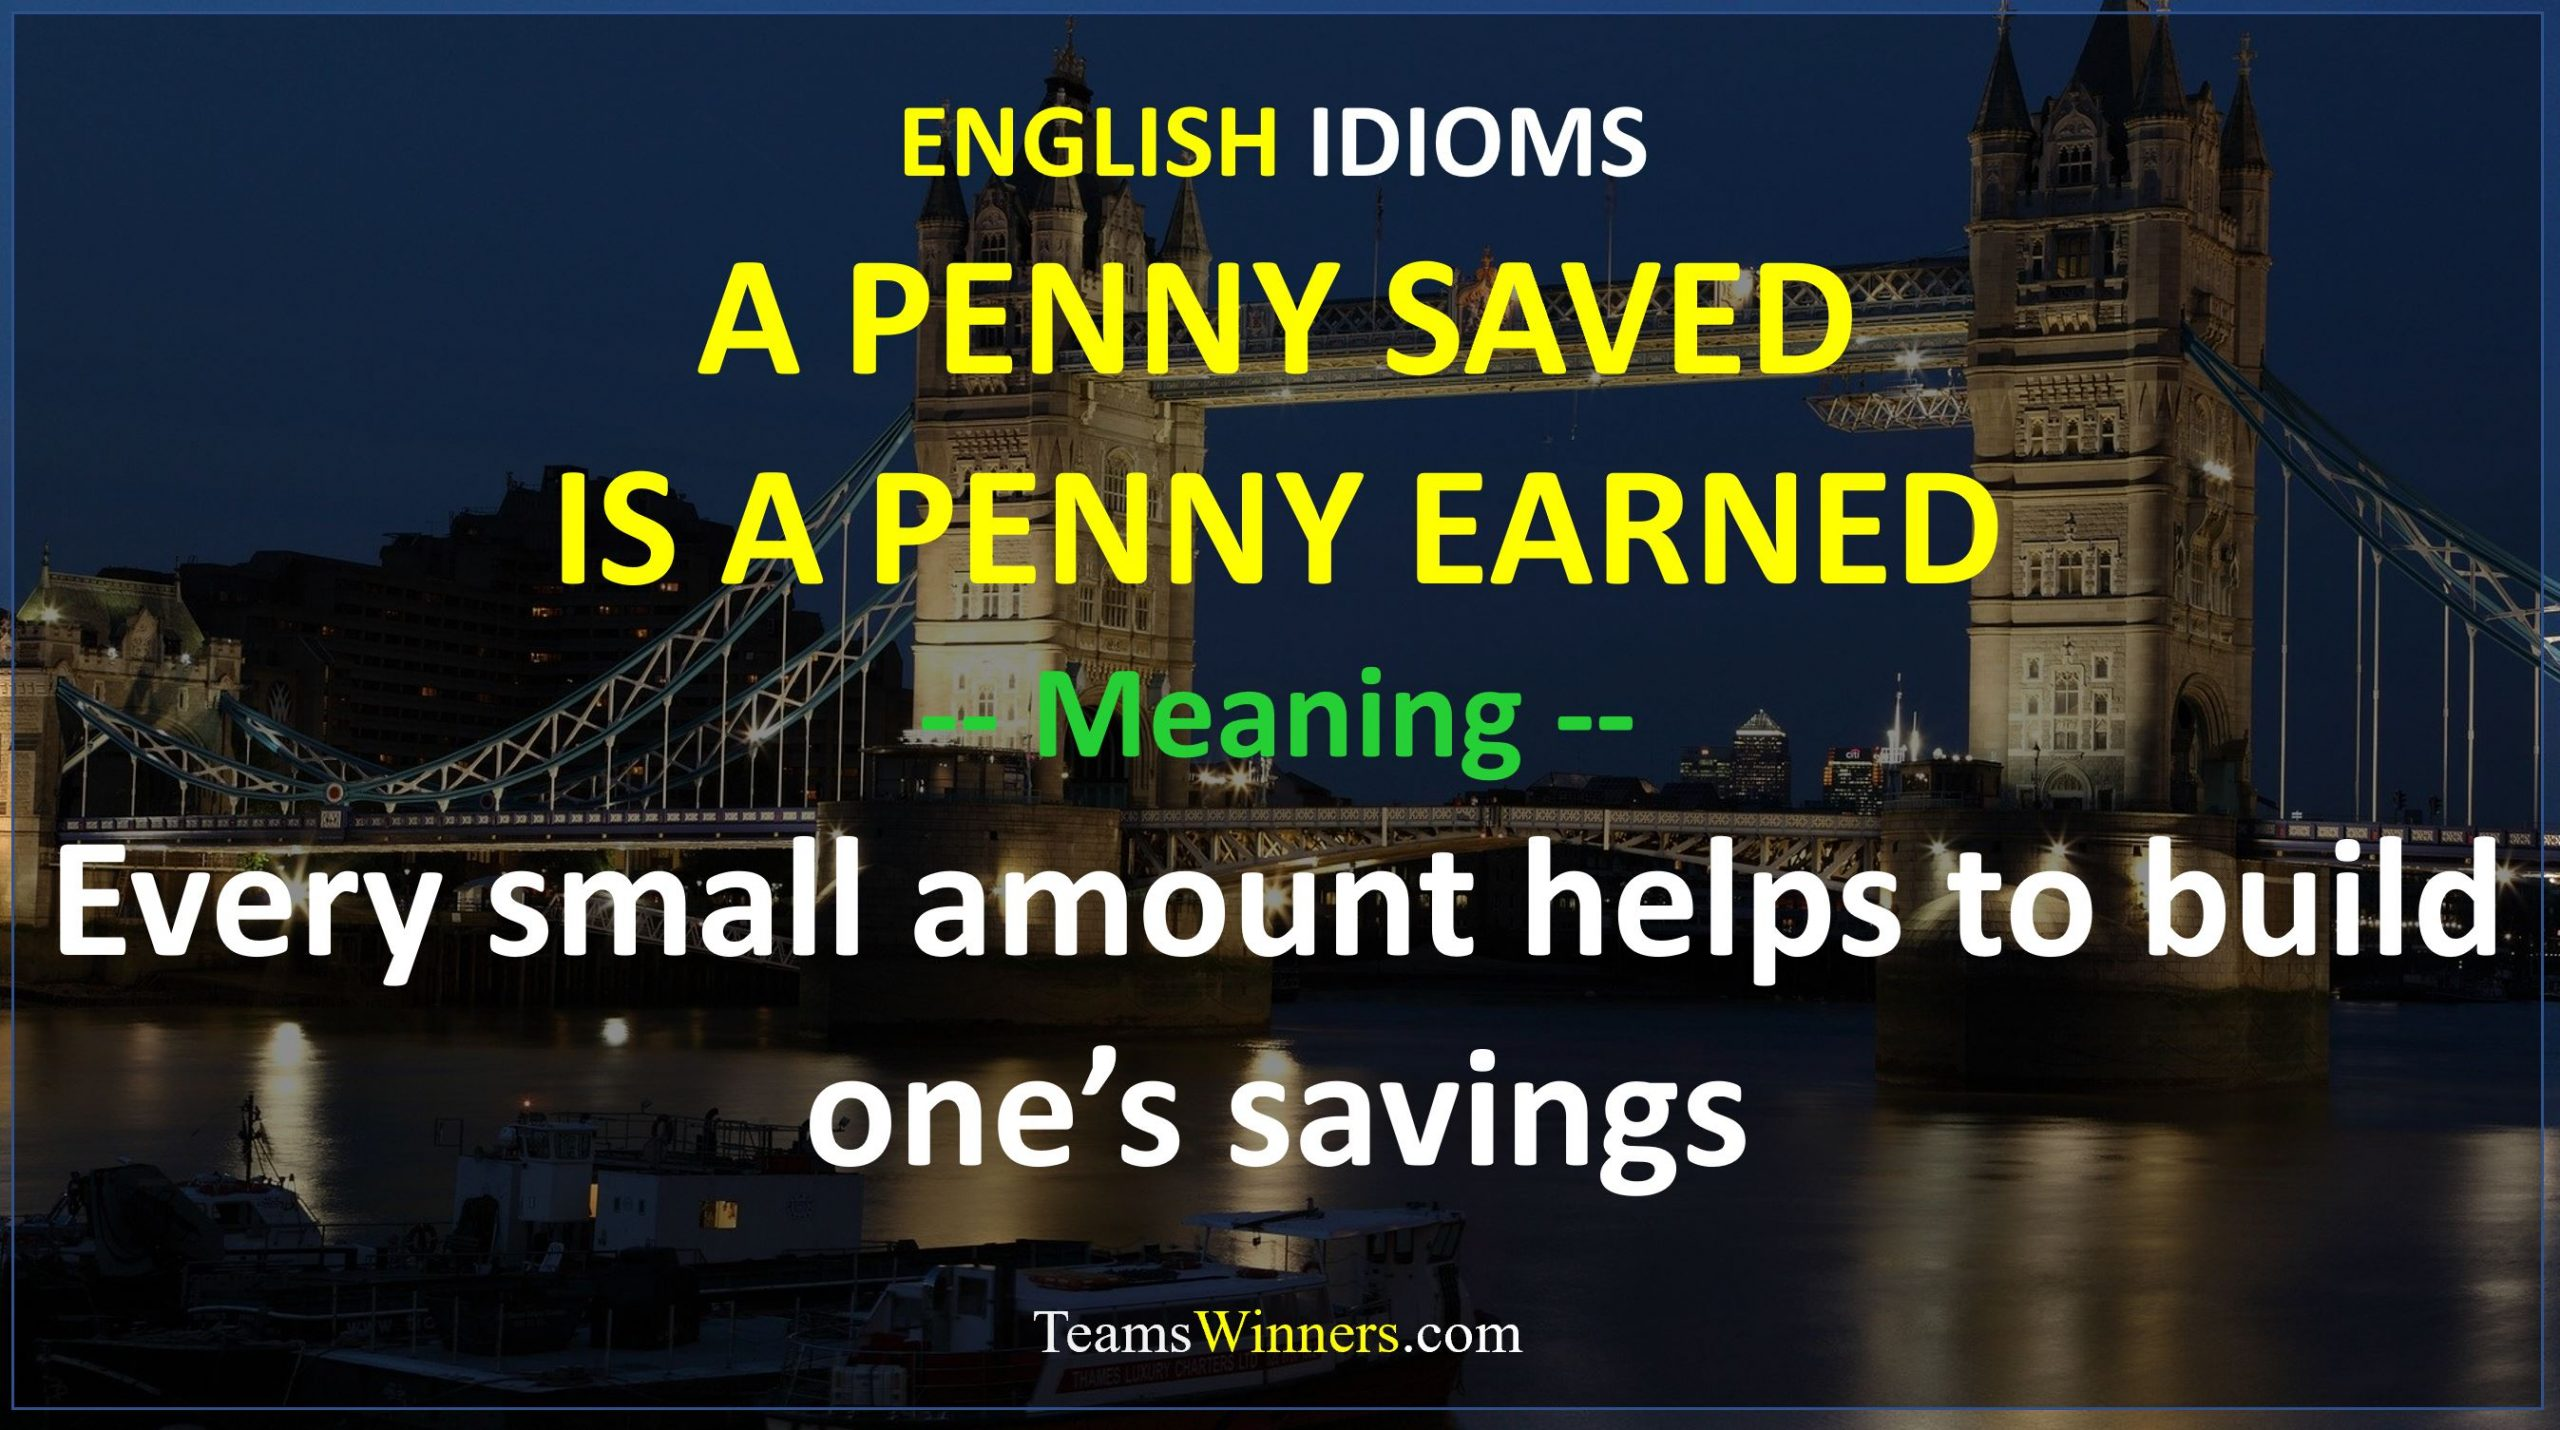 English Idiom - A Penny Saved is A Penny Earned